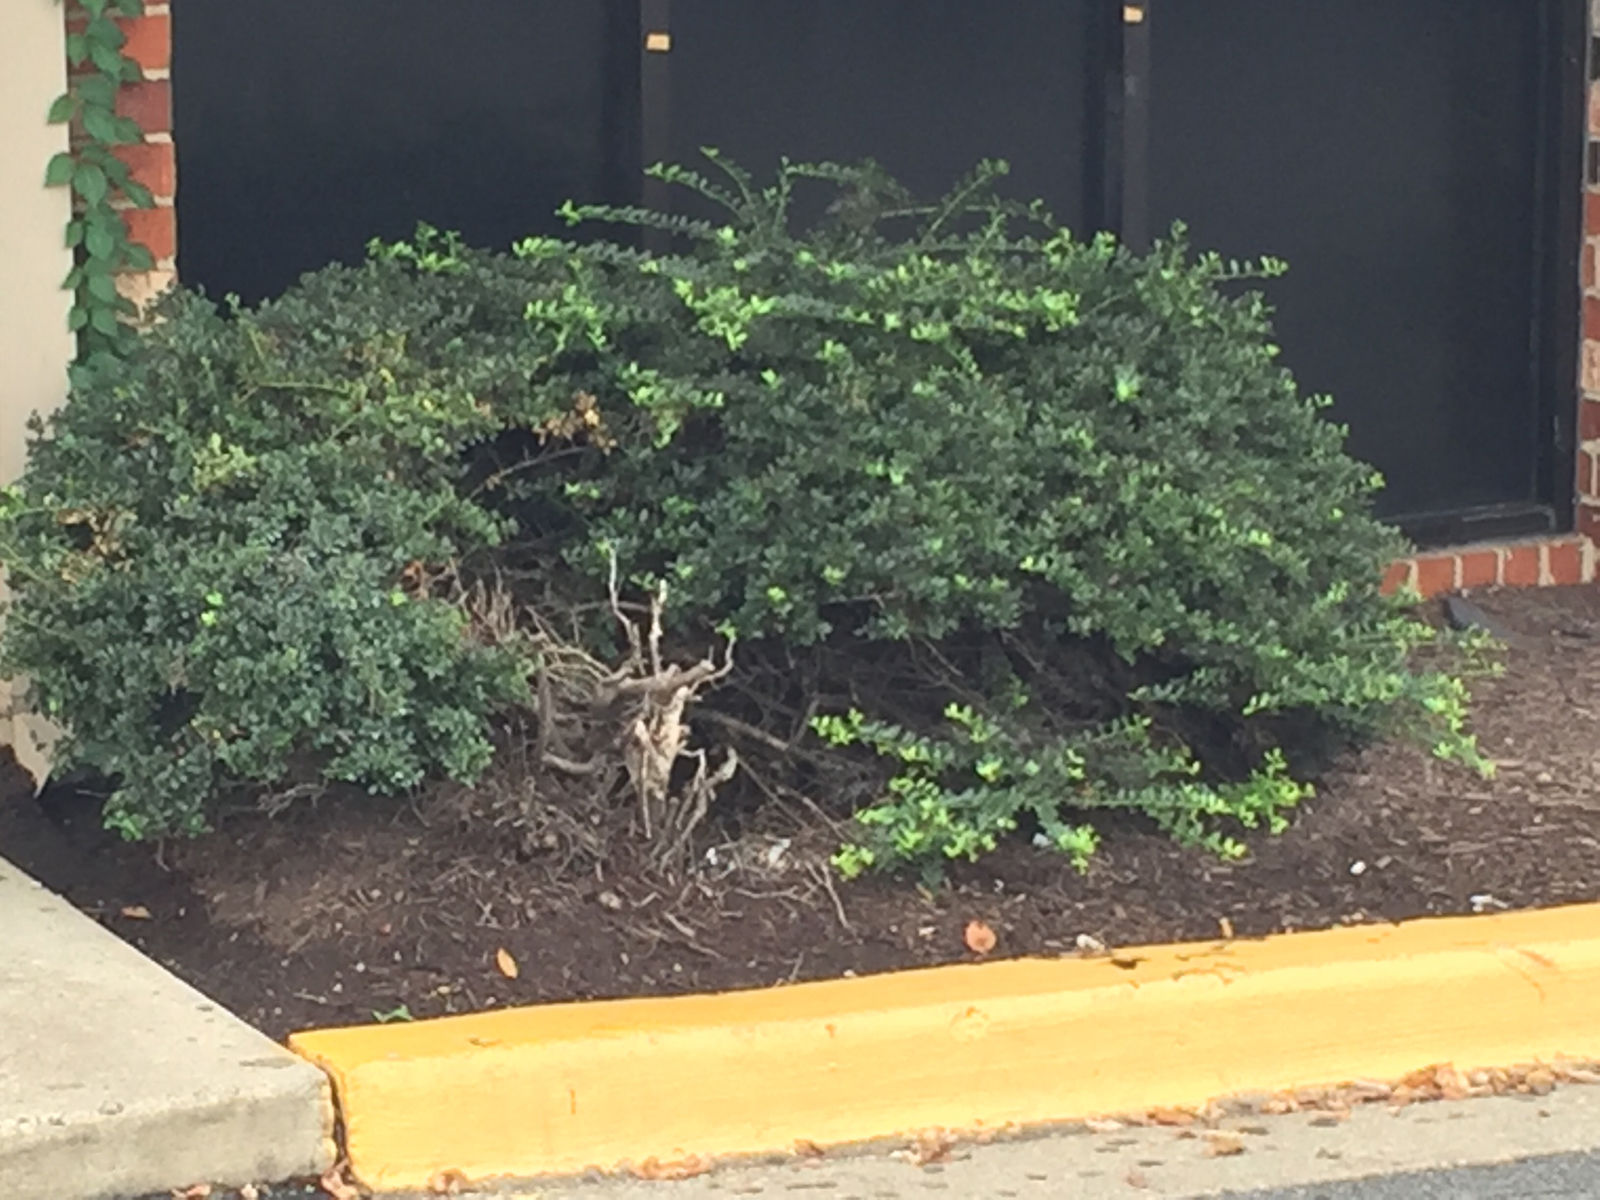 A closer look at where the bee hive was believe to have been located. (WTOP/Dave Foley)